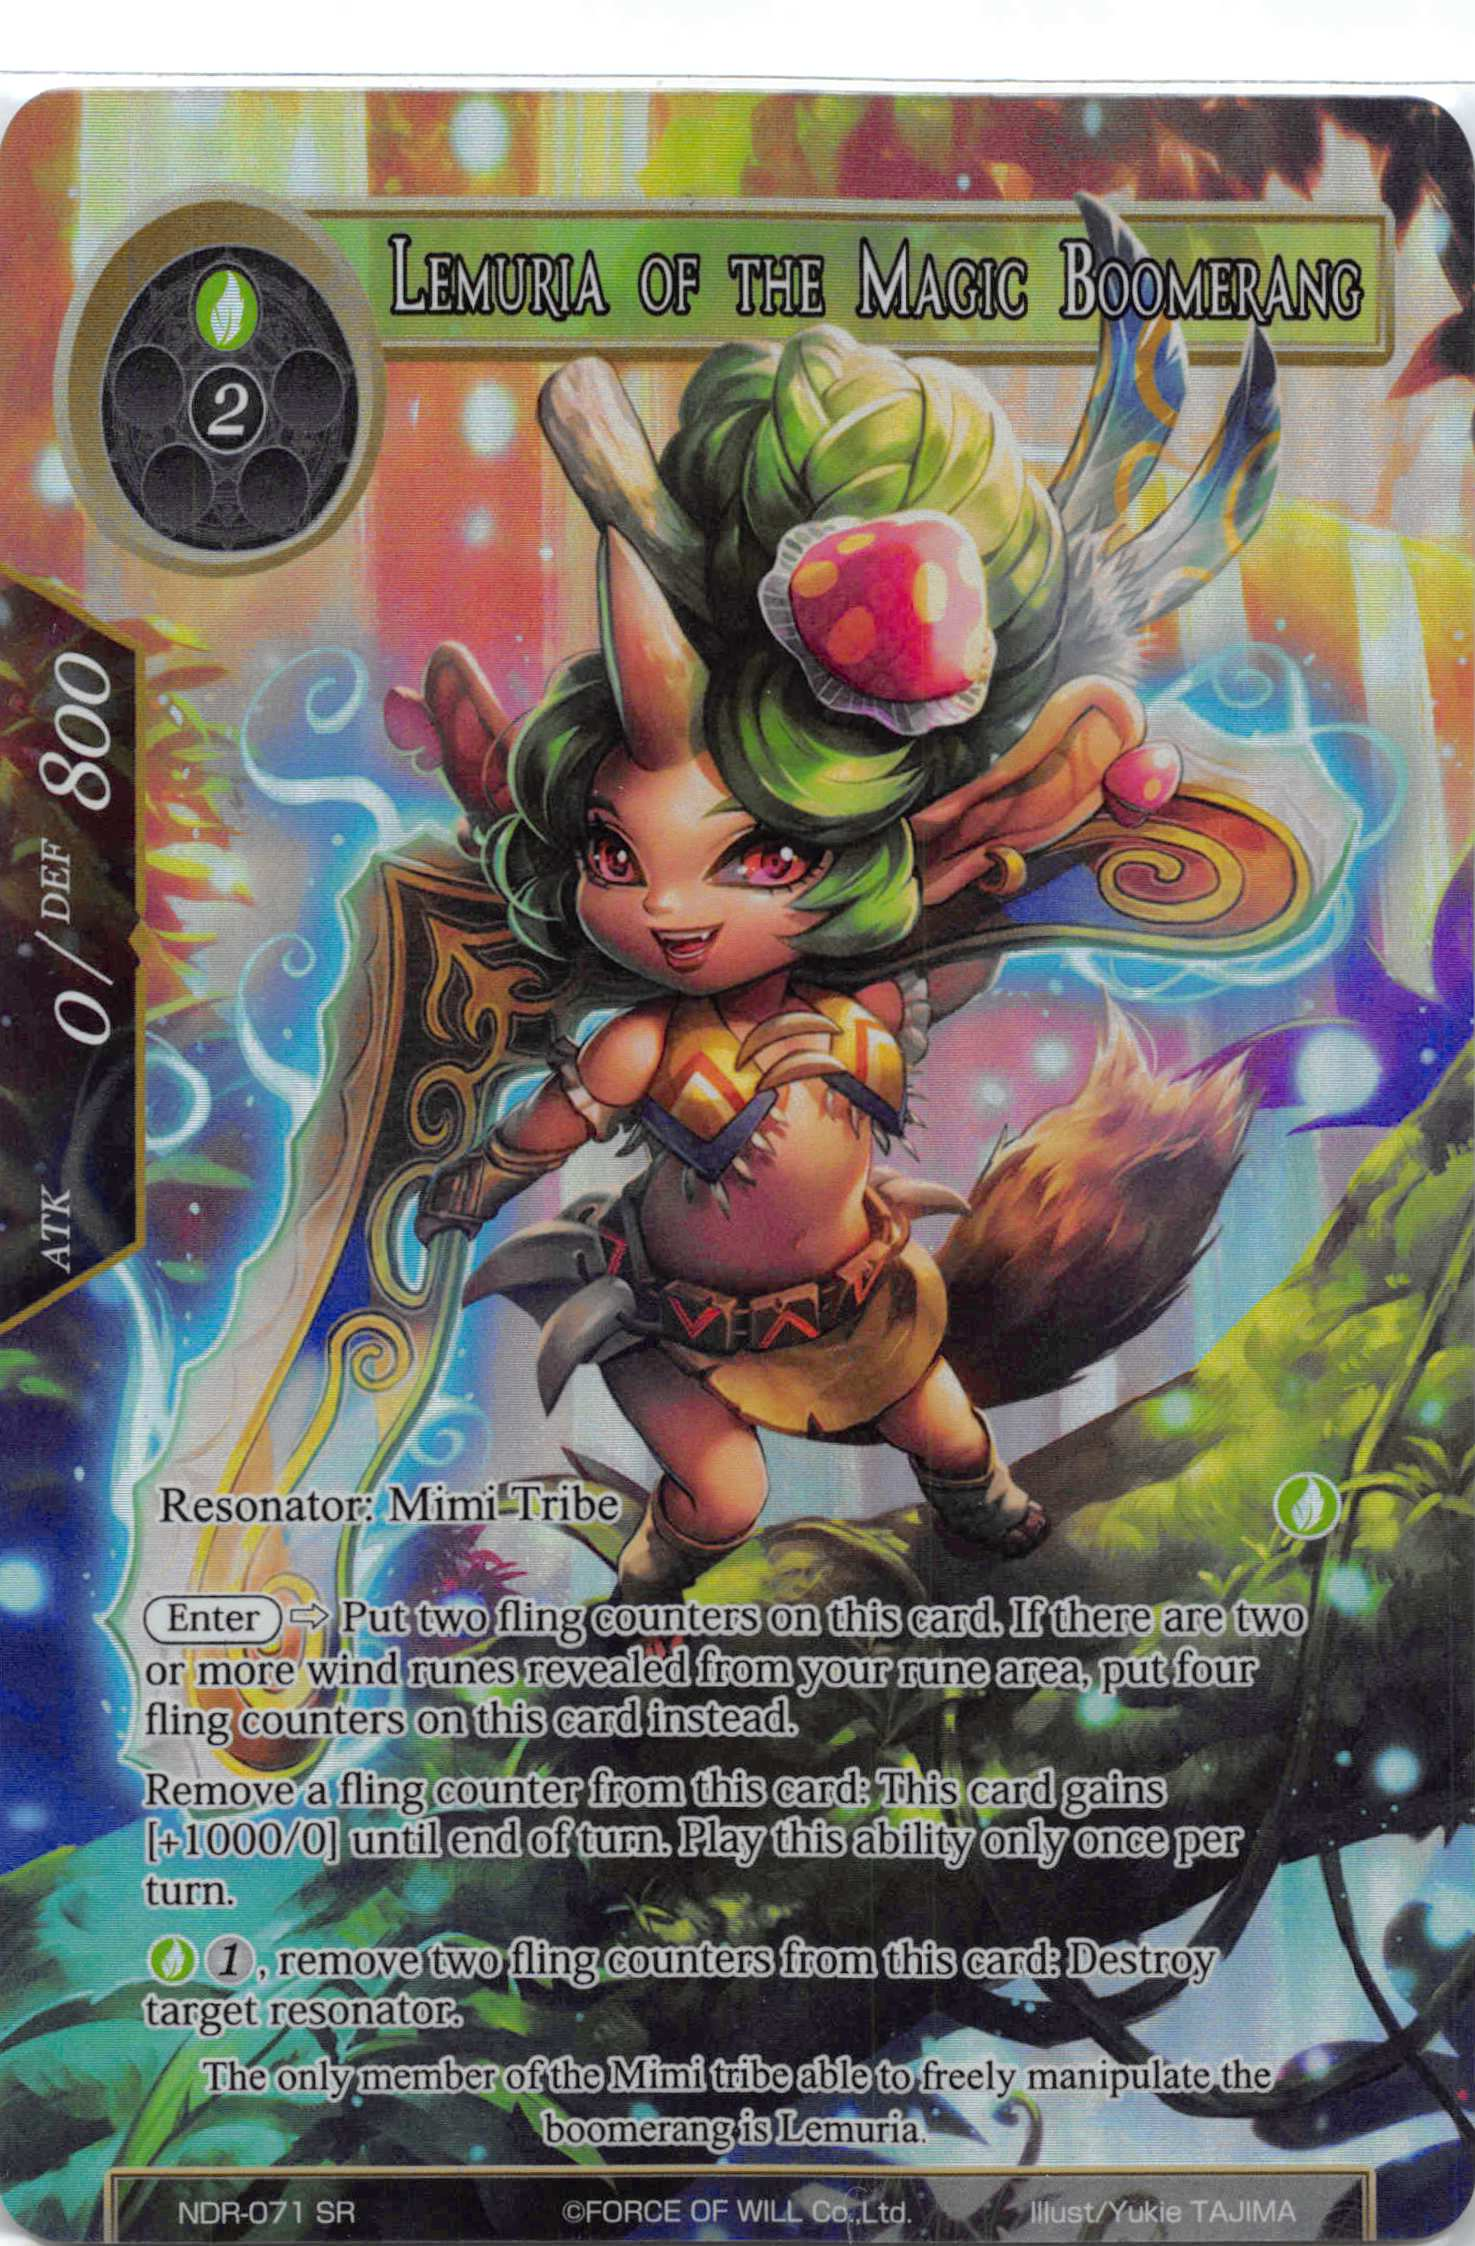 Lemuria of the Magic Boomerang - NDR-071 - SR - Full Art